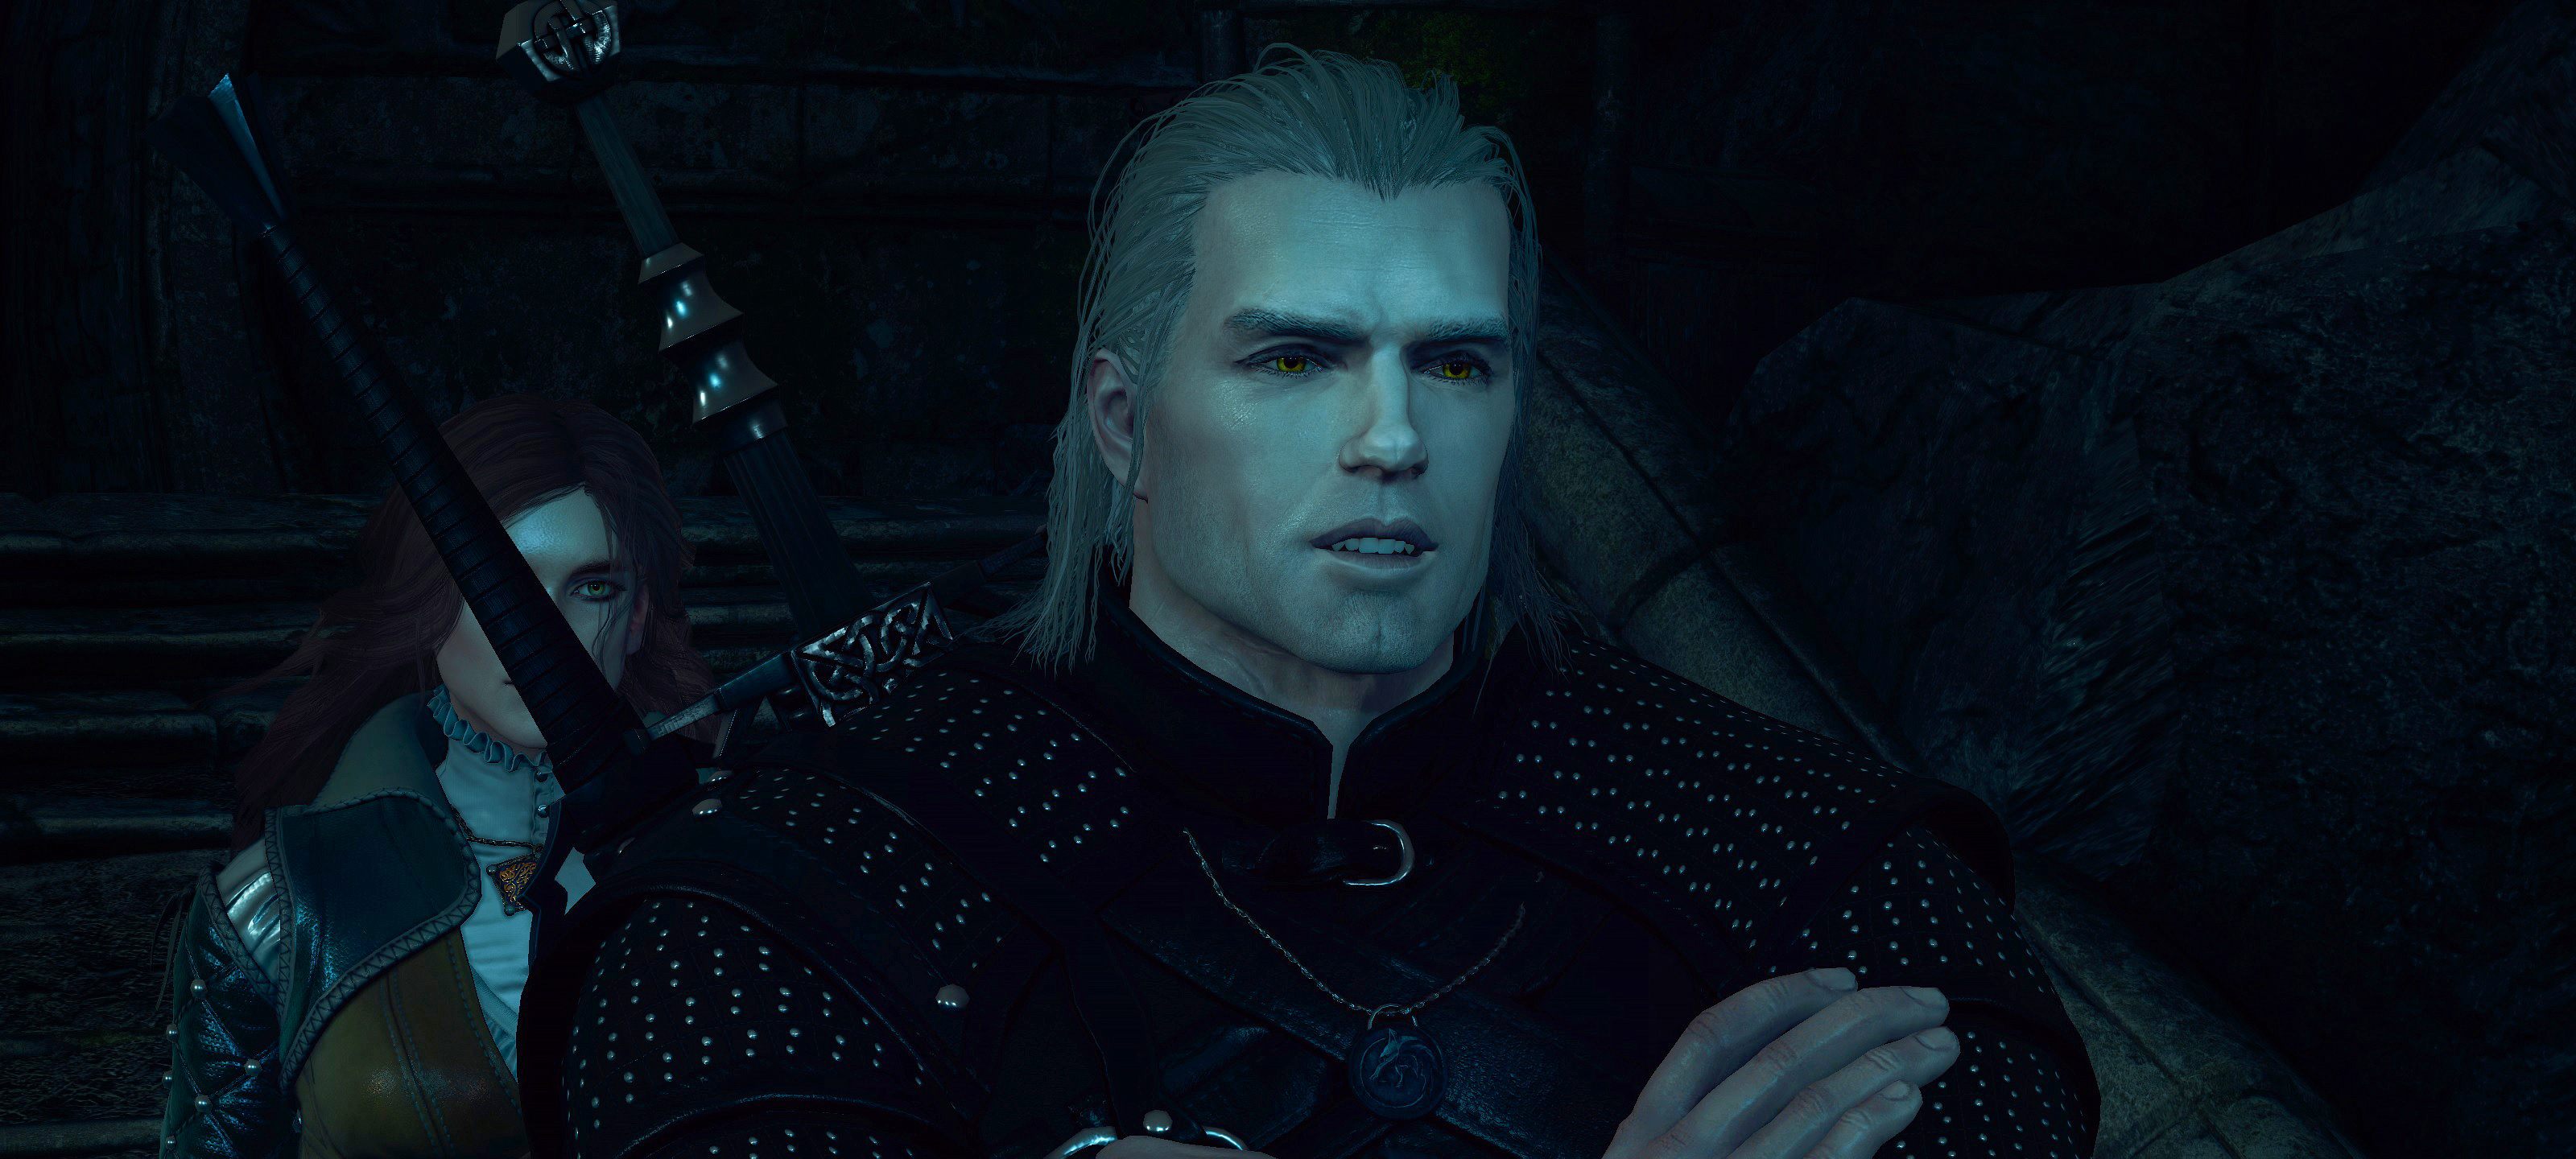 Henry Cavill in The Witcher 3